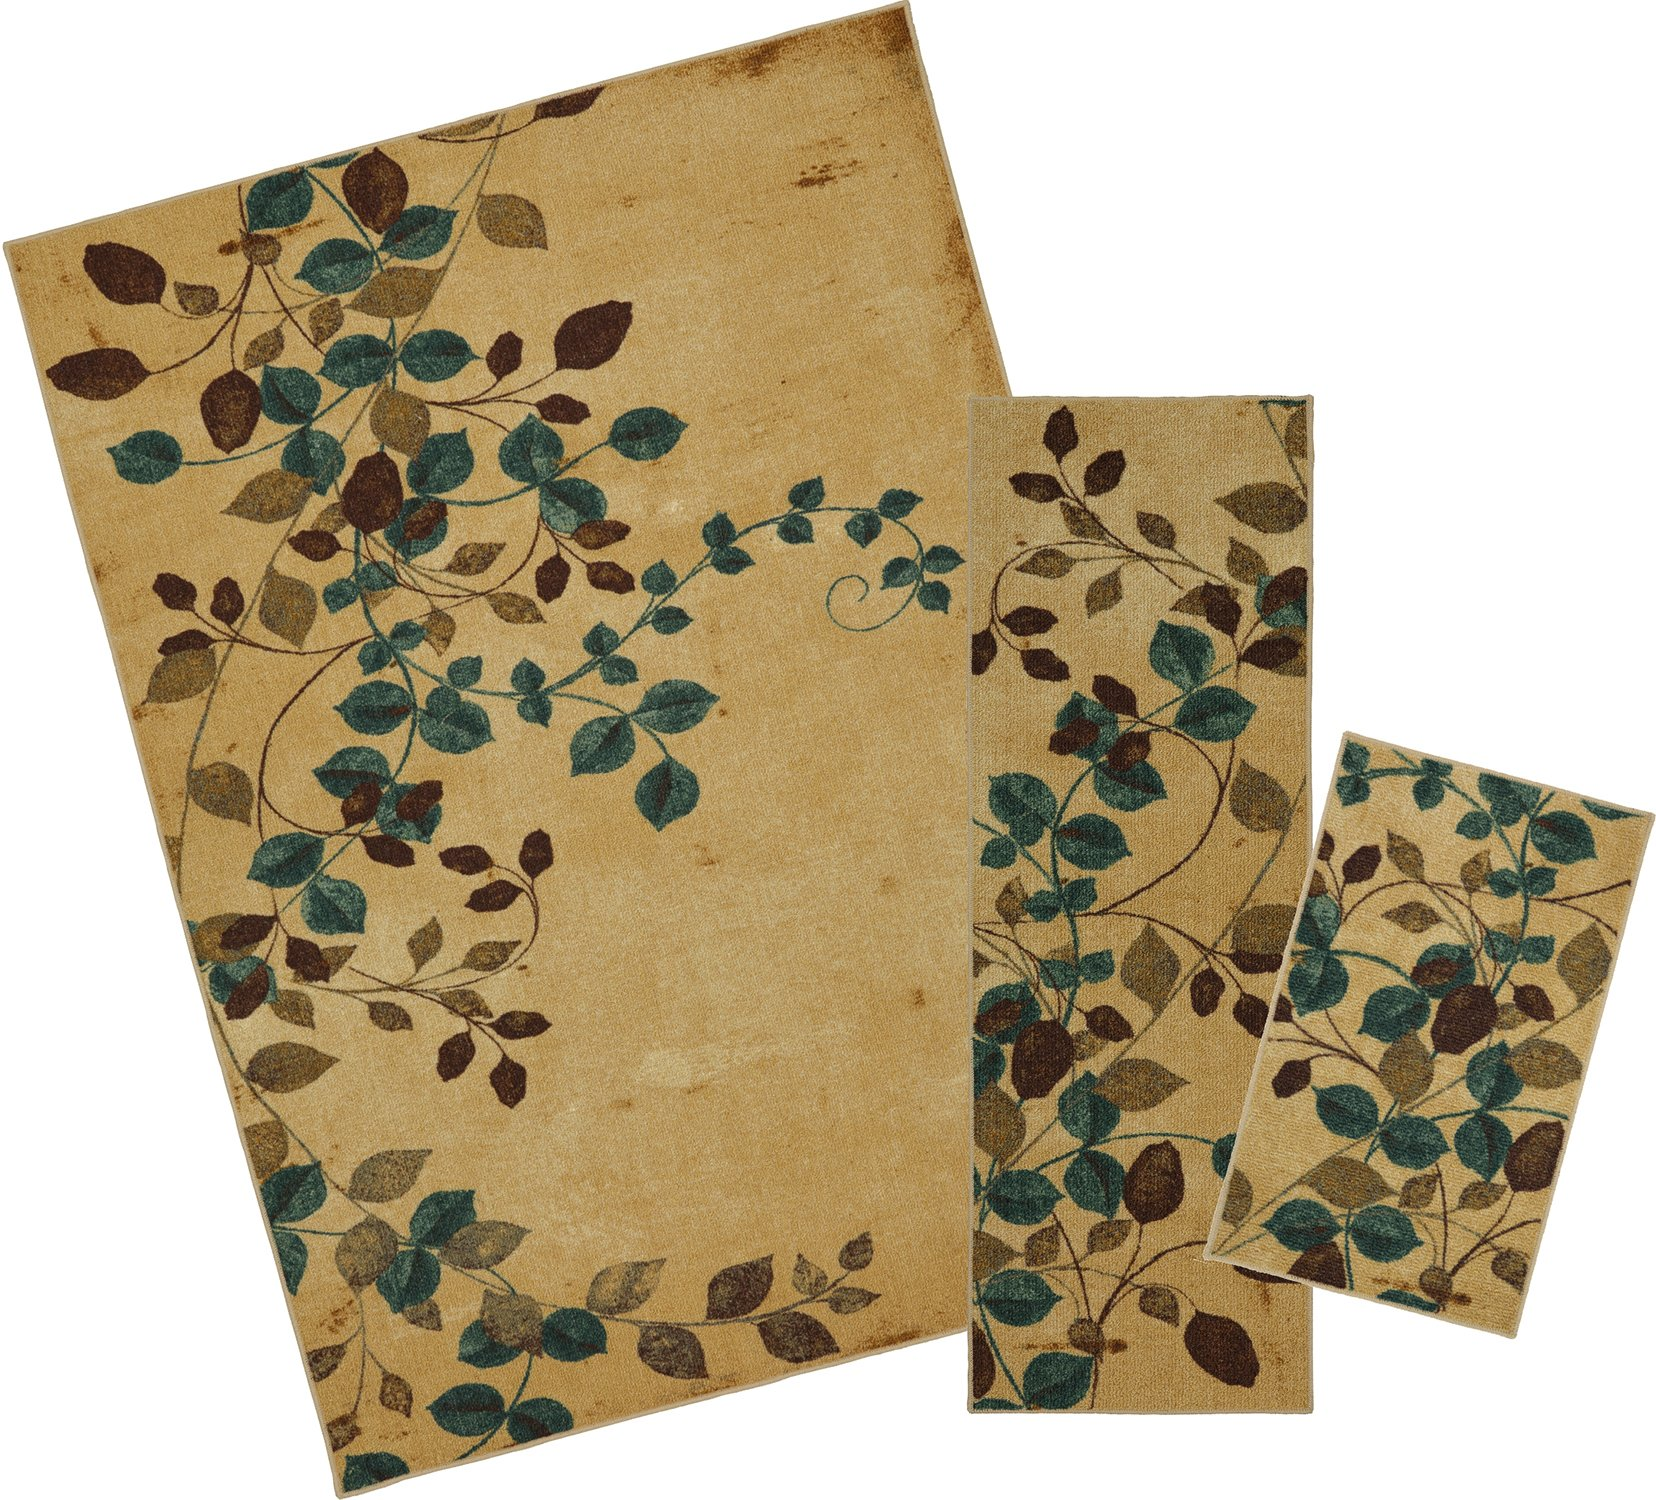 Mohawk Home Soho Plum Vine Floral Printed Area Rug Set, Set Contains: 1'6x2'6, 1'8x5' and 5'x7'